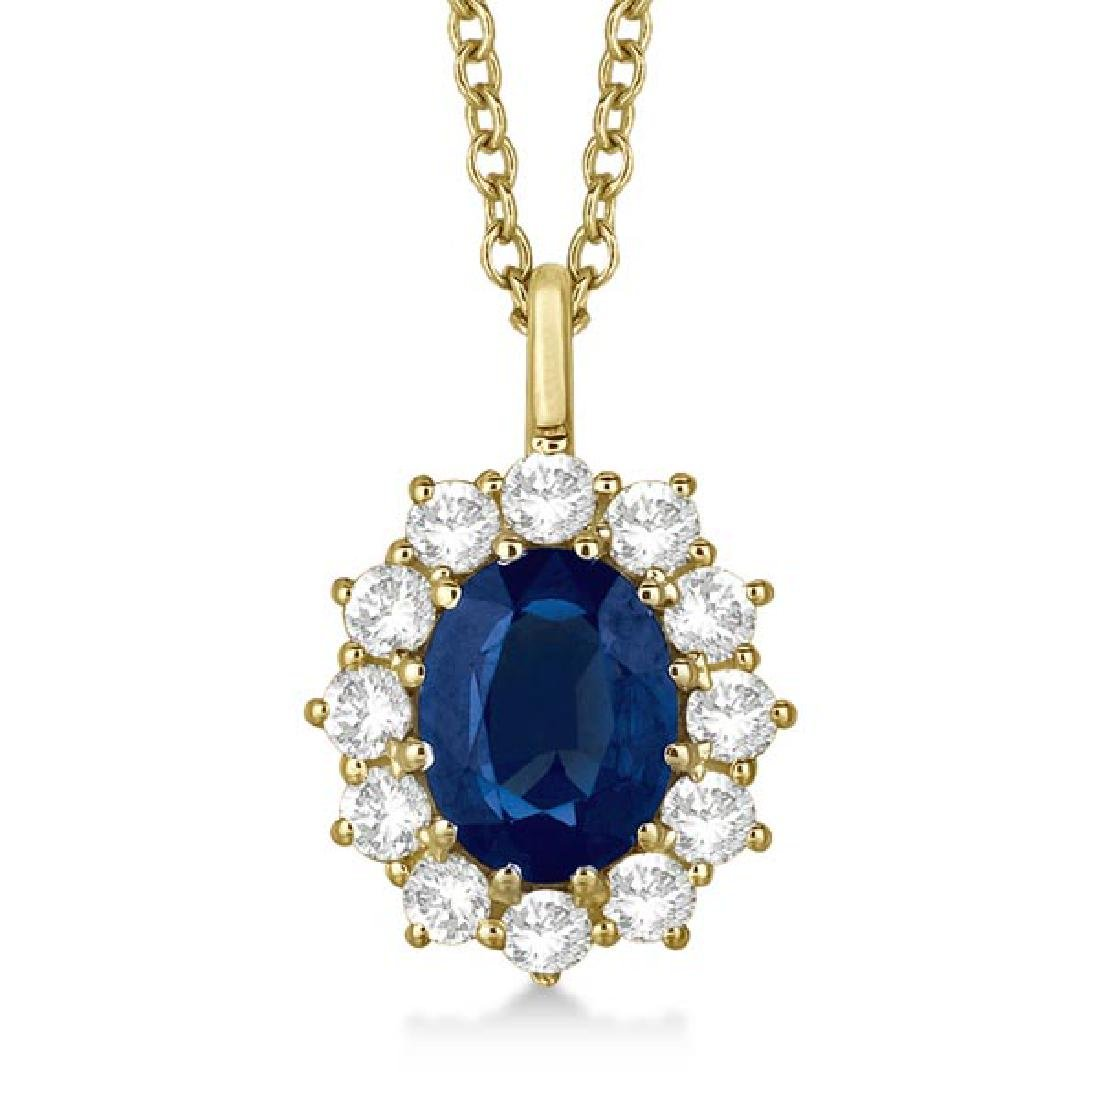 Oval Blue Sapphire and Diamond Pendant Necklace 14k Yel